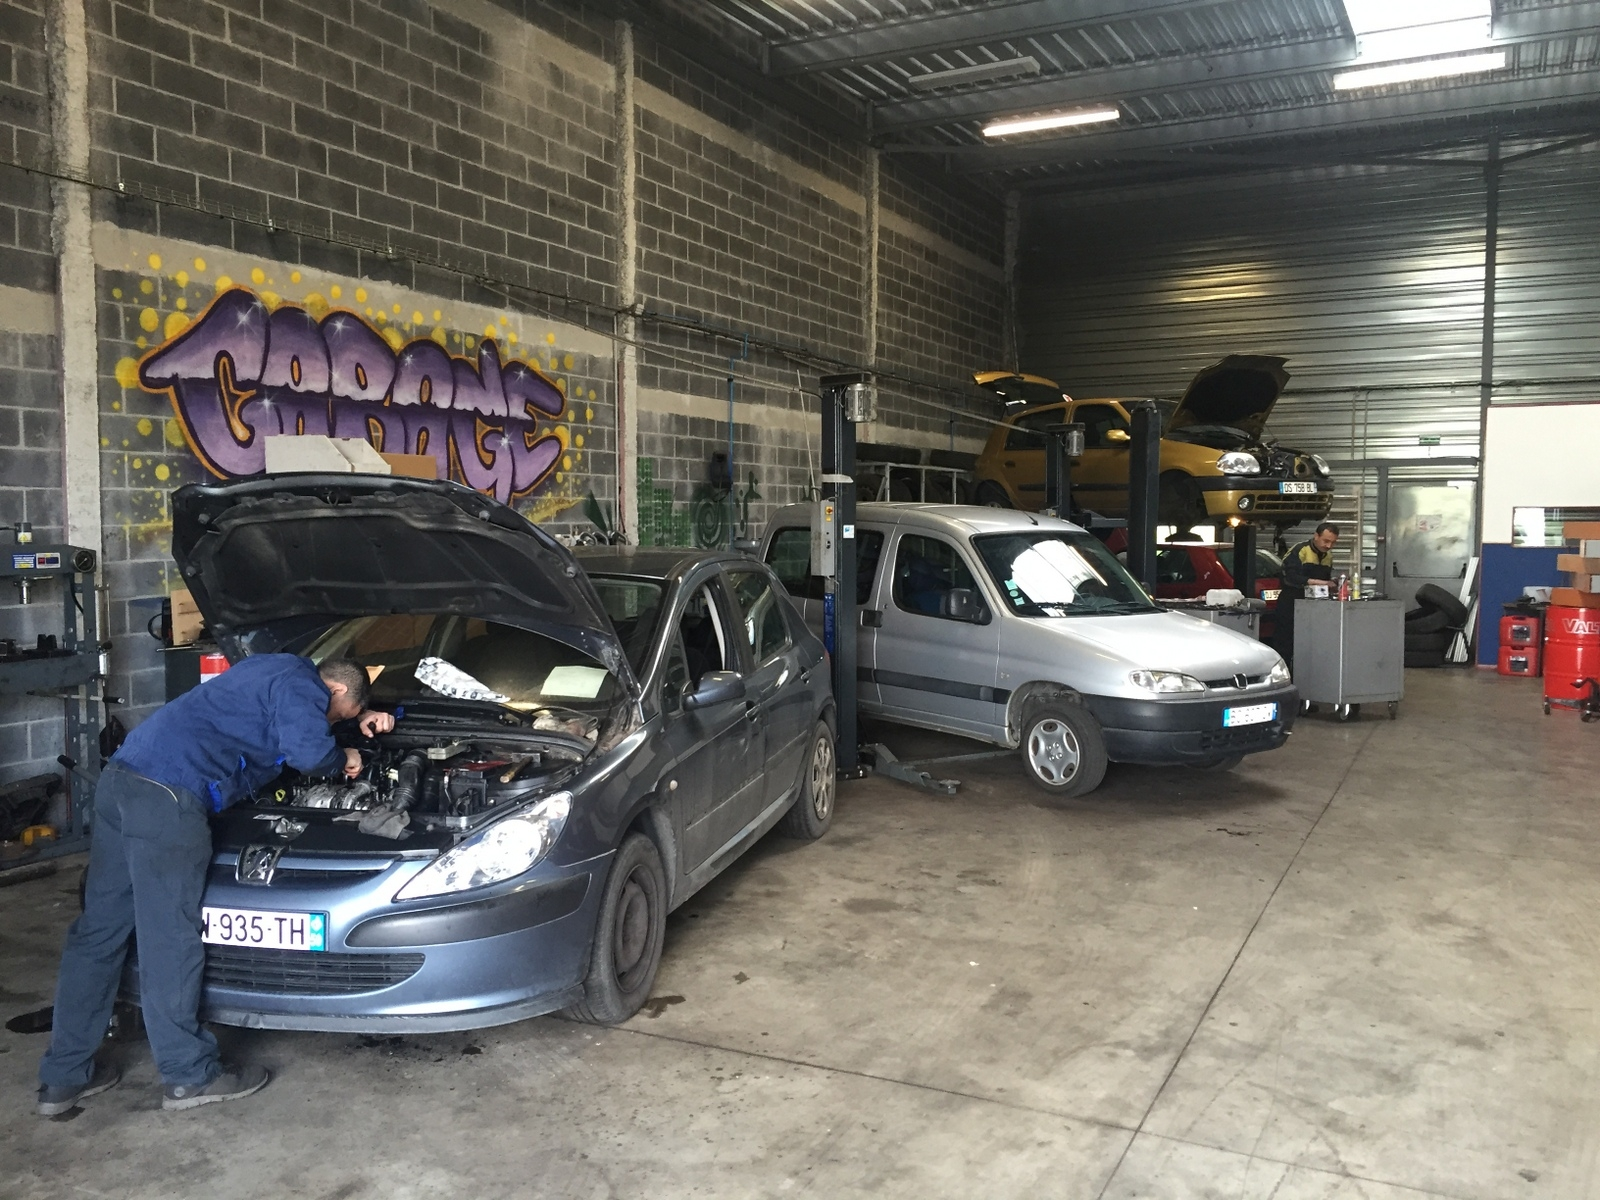 Voitures d occasion garage hainaut for Garage voiture occasion orleans